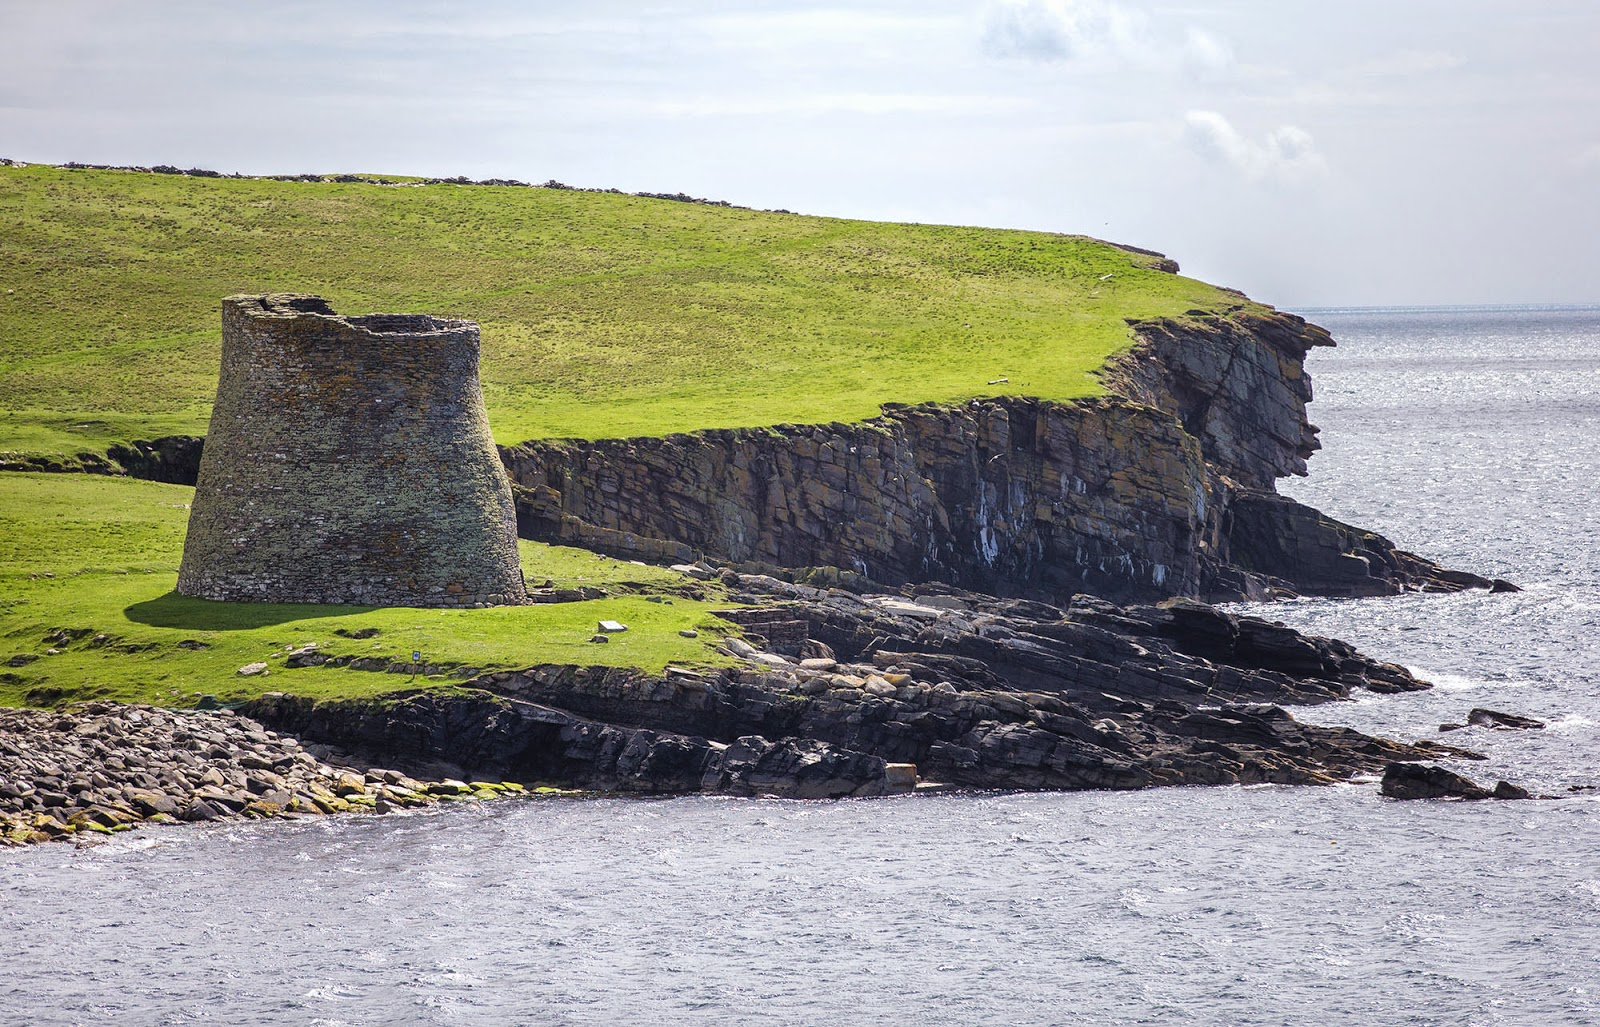 A fortress at the edge of the world - the Broch of Mousa, a 44ft high Iron Age stone keep on the island of Mousa, Shetland, Scotland [1600 × 1027]